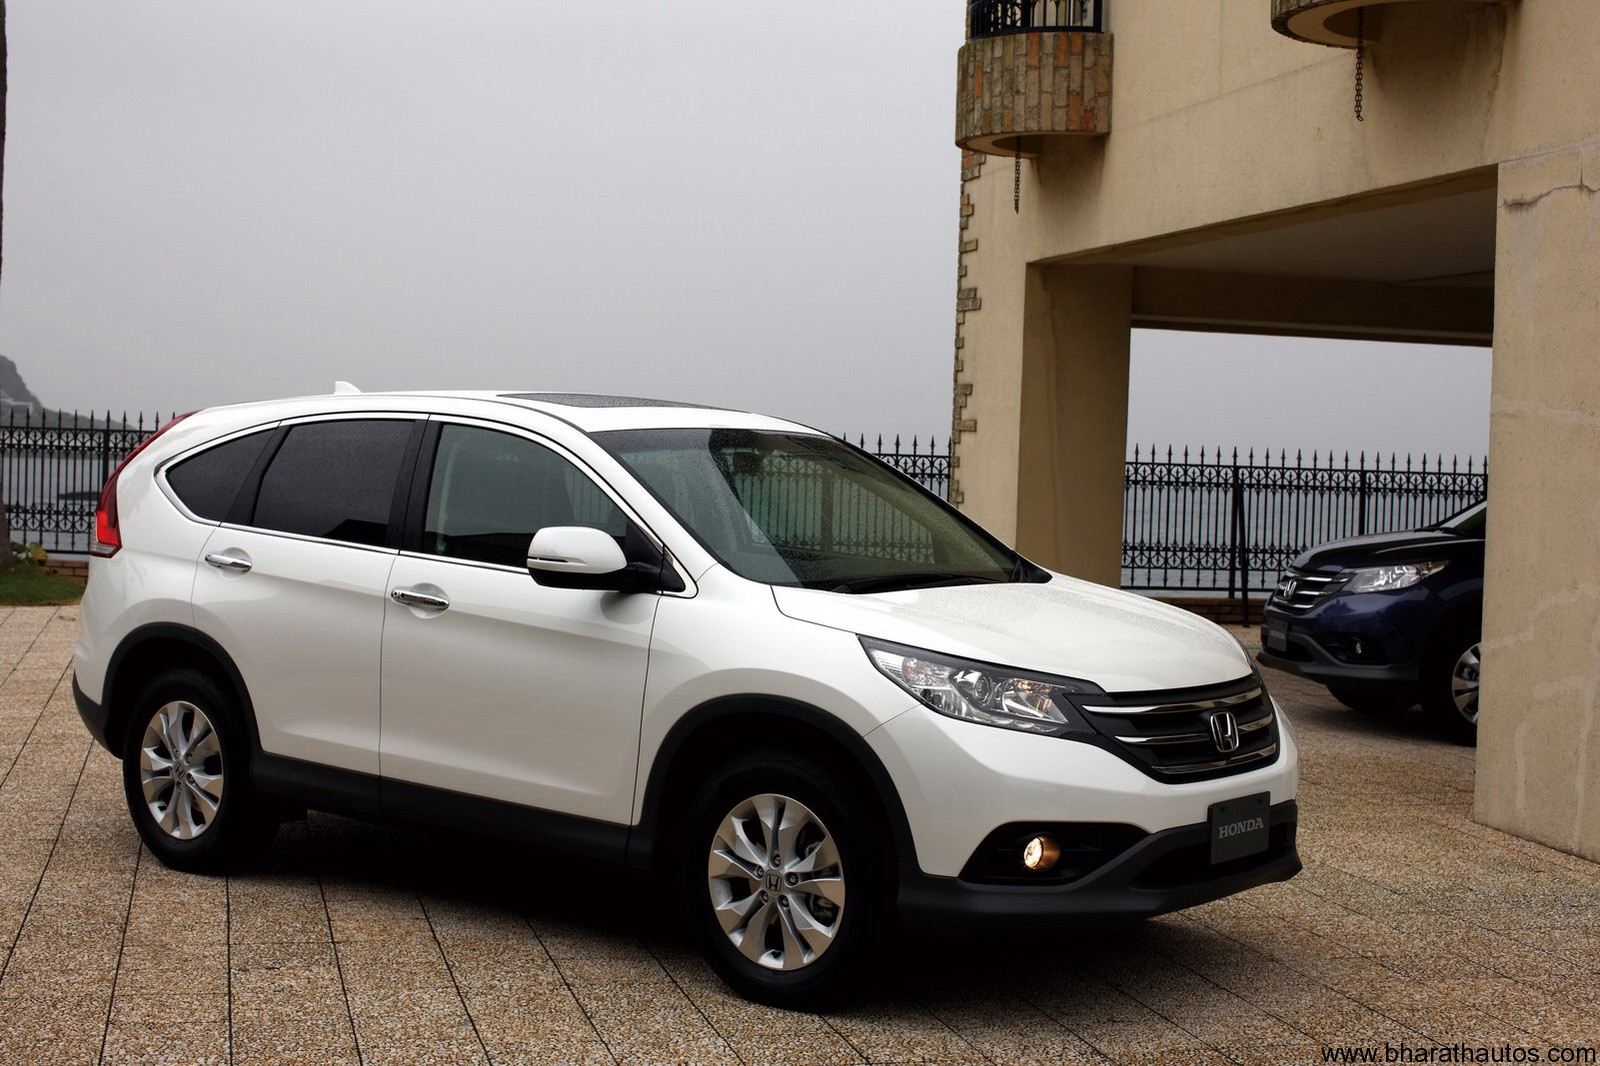 2012 Honda Cr V Bookings To Start In A Few Days